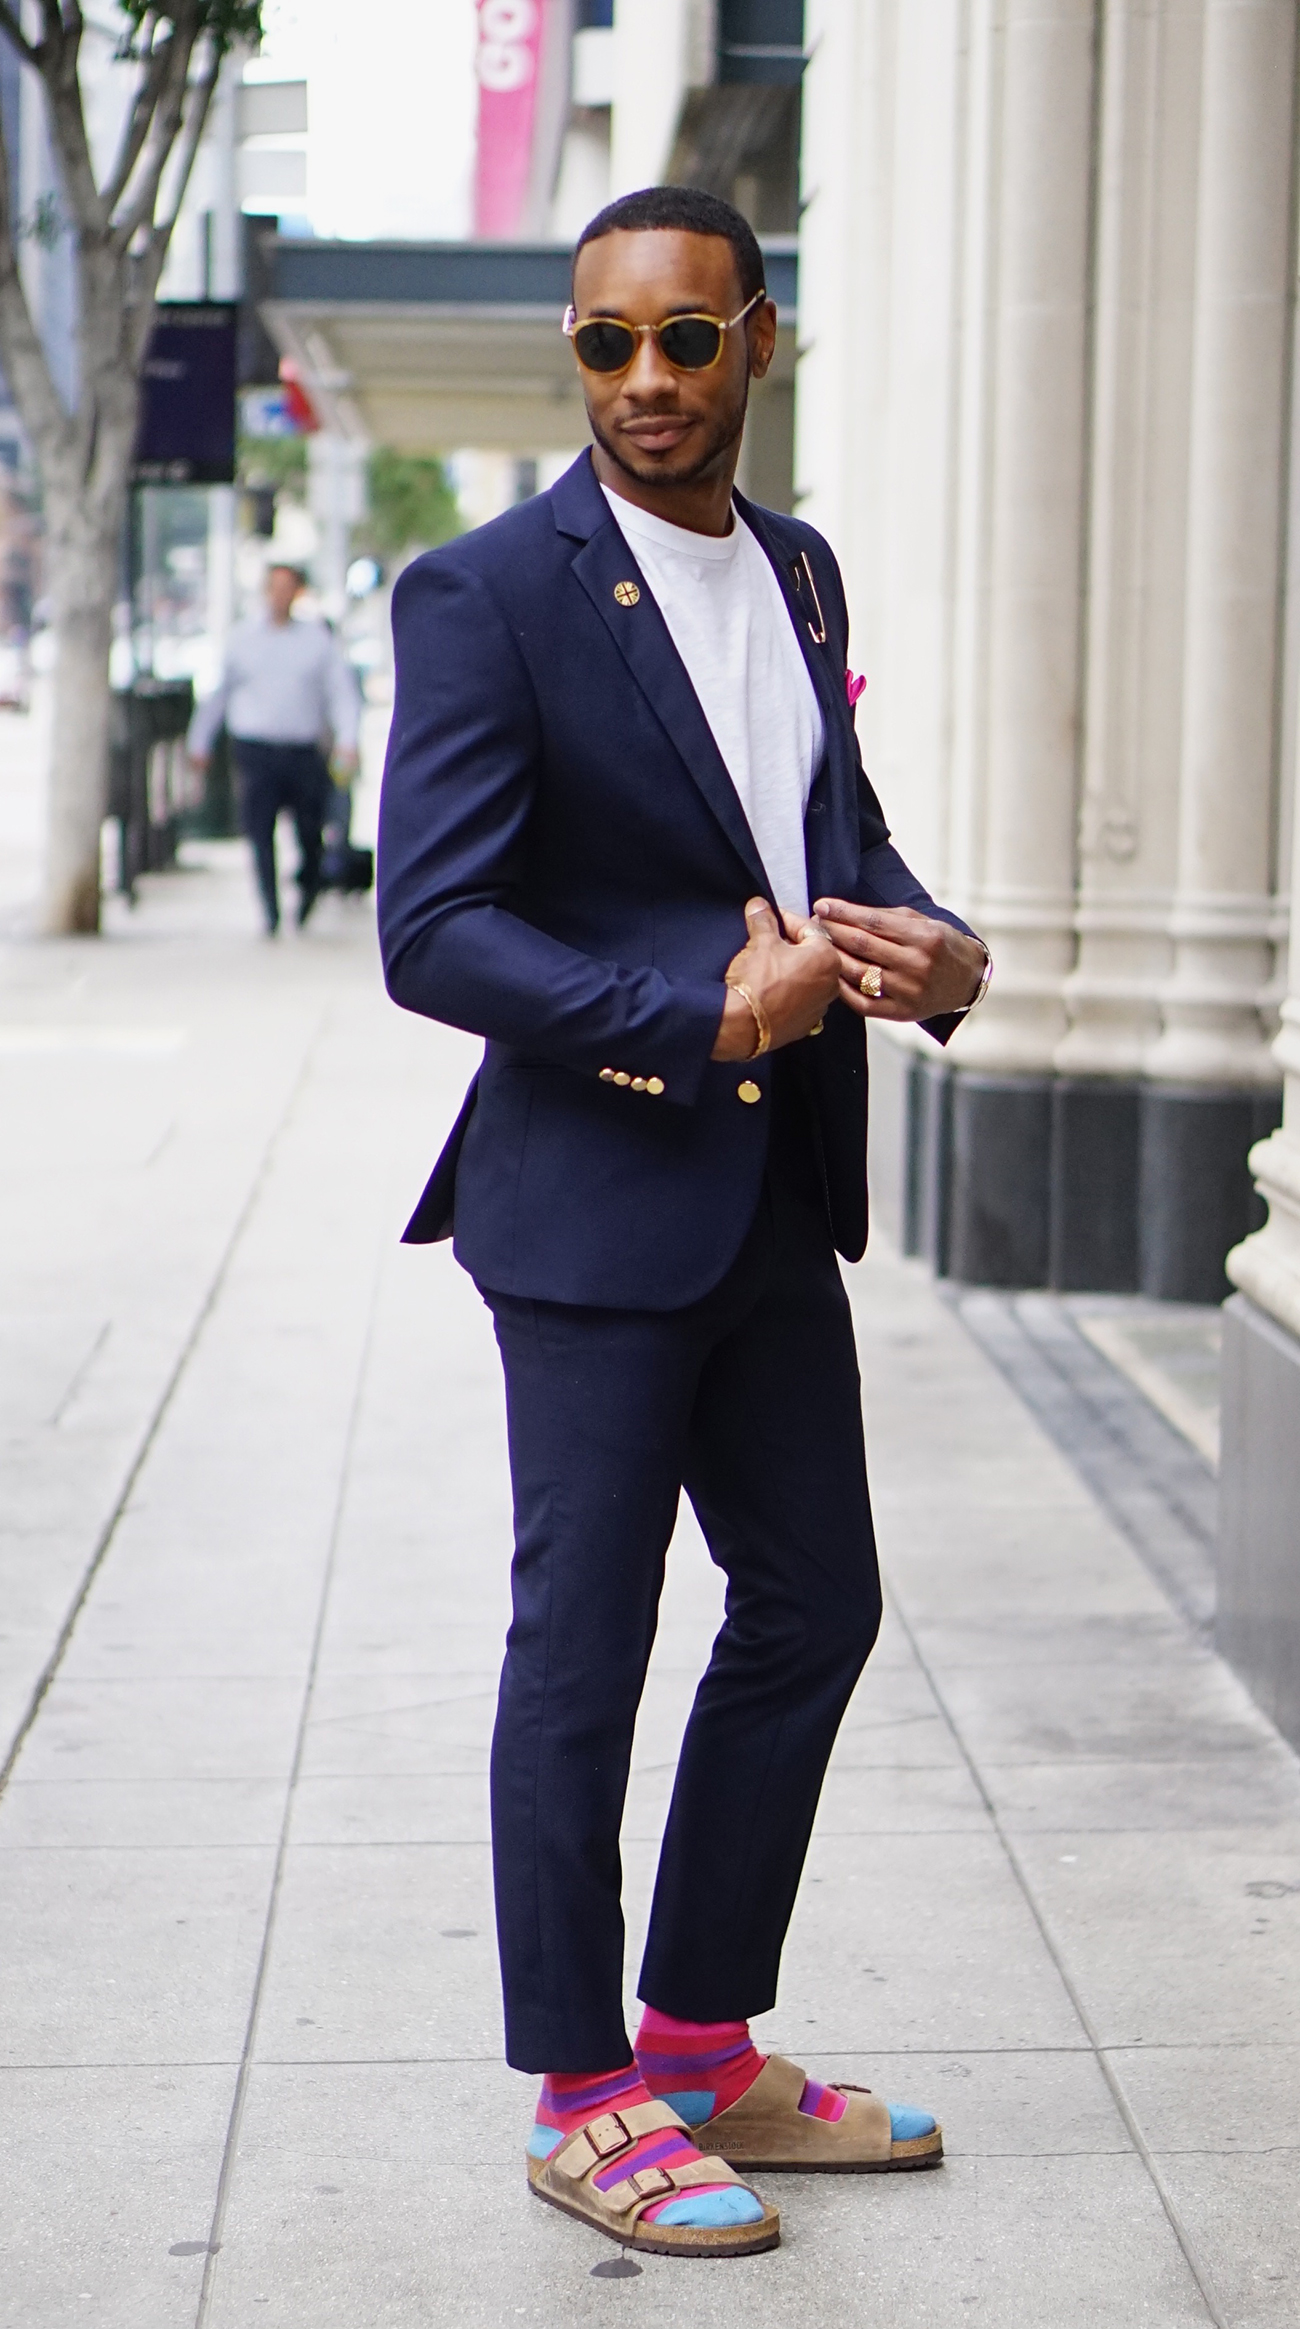 OOTD: BIRKENSTOCK SANDALS WITH A SUIT – Norris Danta Ford